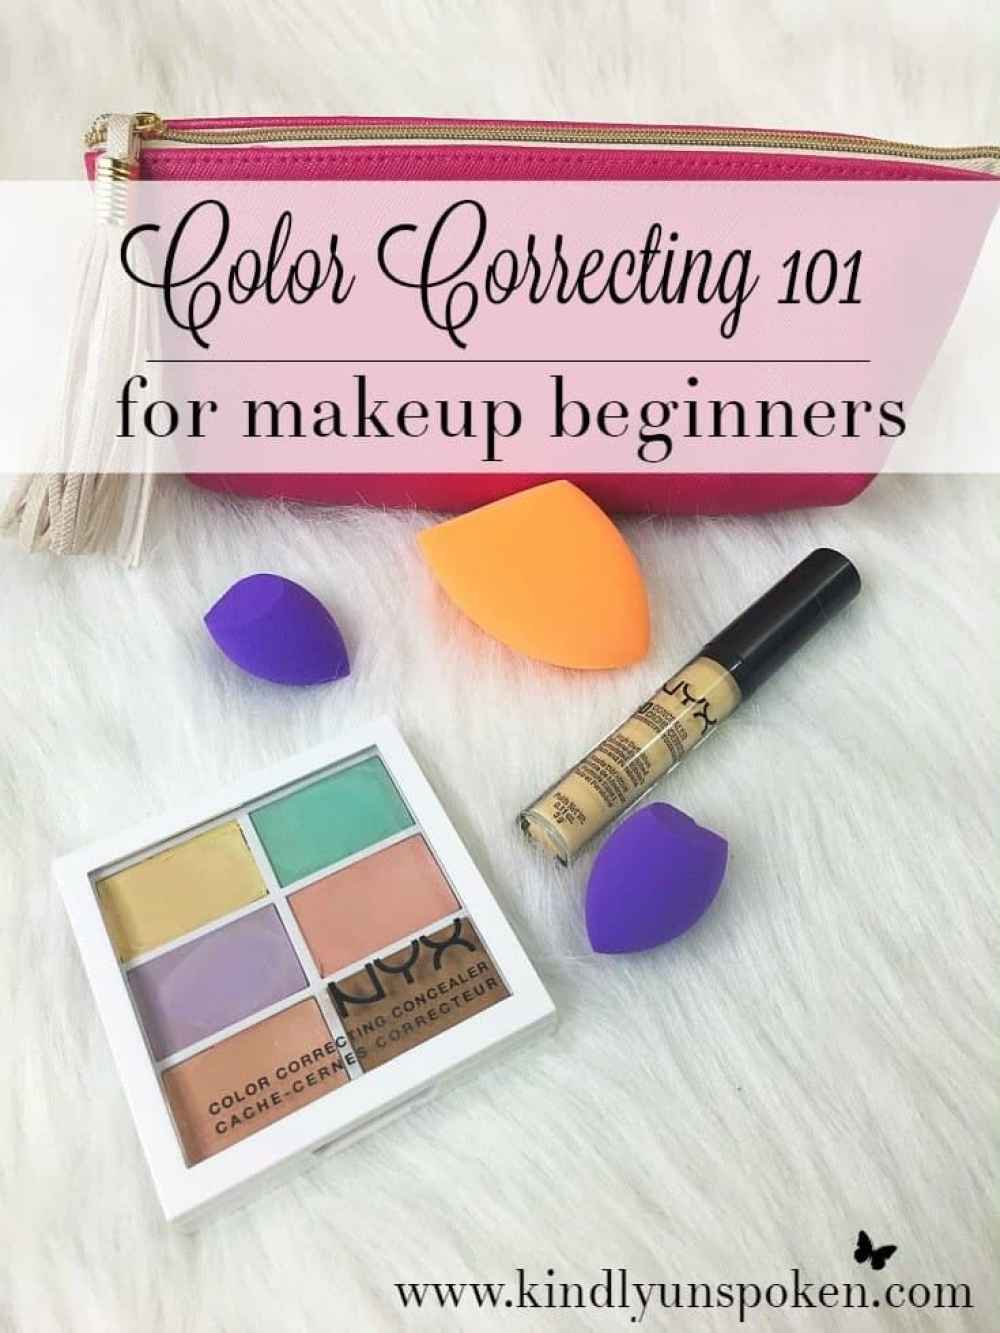 Wondering how to cover up those pesky dark circles once and for all? Then check out my guide on Color Correcting 101 For Makeup Beginners where I'm sharing how to use color-correcting makeup, how to apply color correctors + a helpful chart on which colors to use, and the best drugstore and high end makeup products to cover up dark circles, dark spots, and redness. #colorcorrecting #concealer #makeup #makeupguide #makeuptips